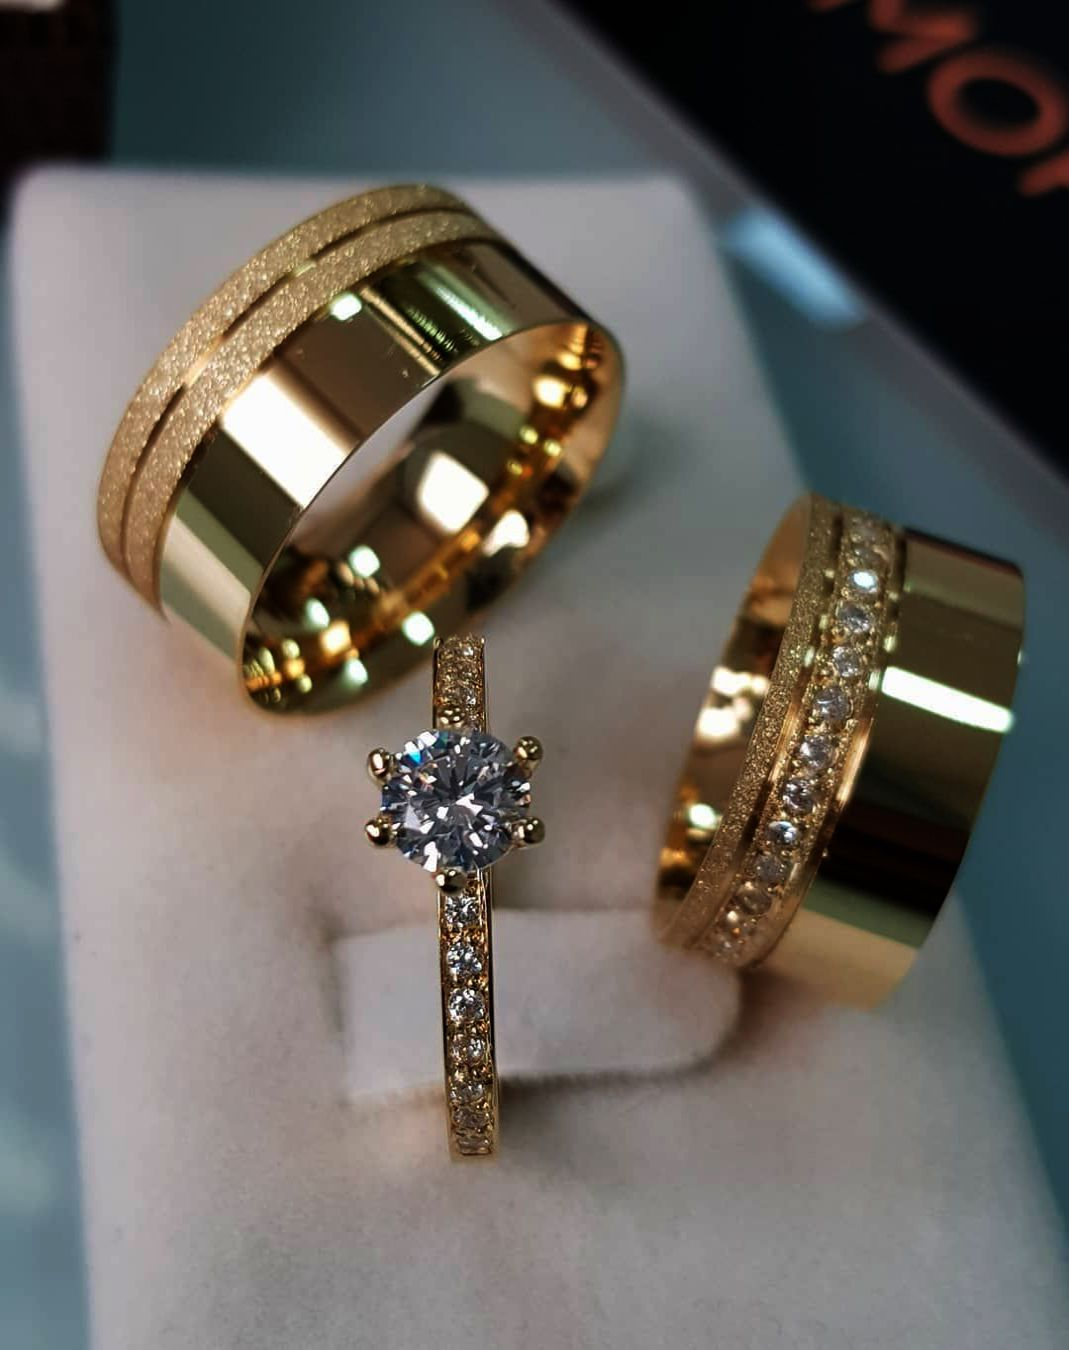 Aegean Jewelry Beast and Beauty Love Style Wedding Band Set Engagement Promise Anniversary Couple Ring